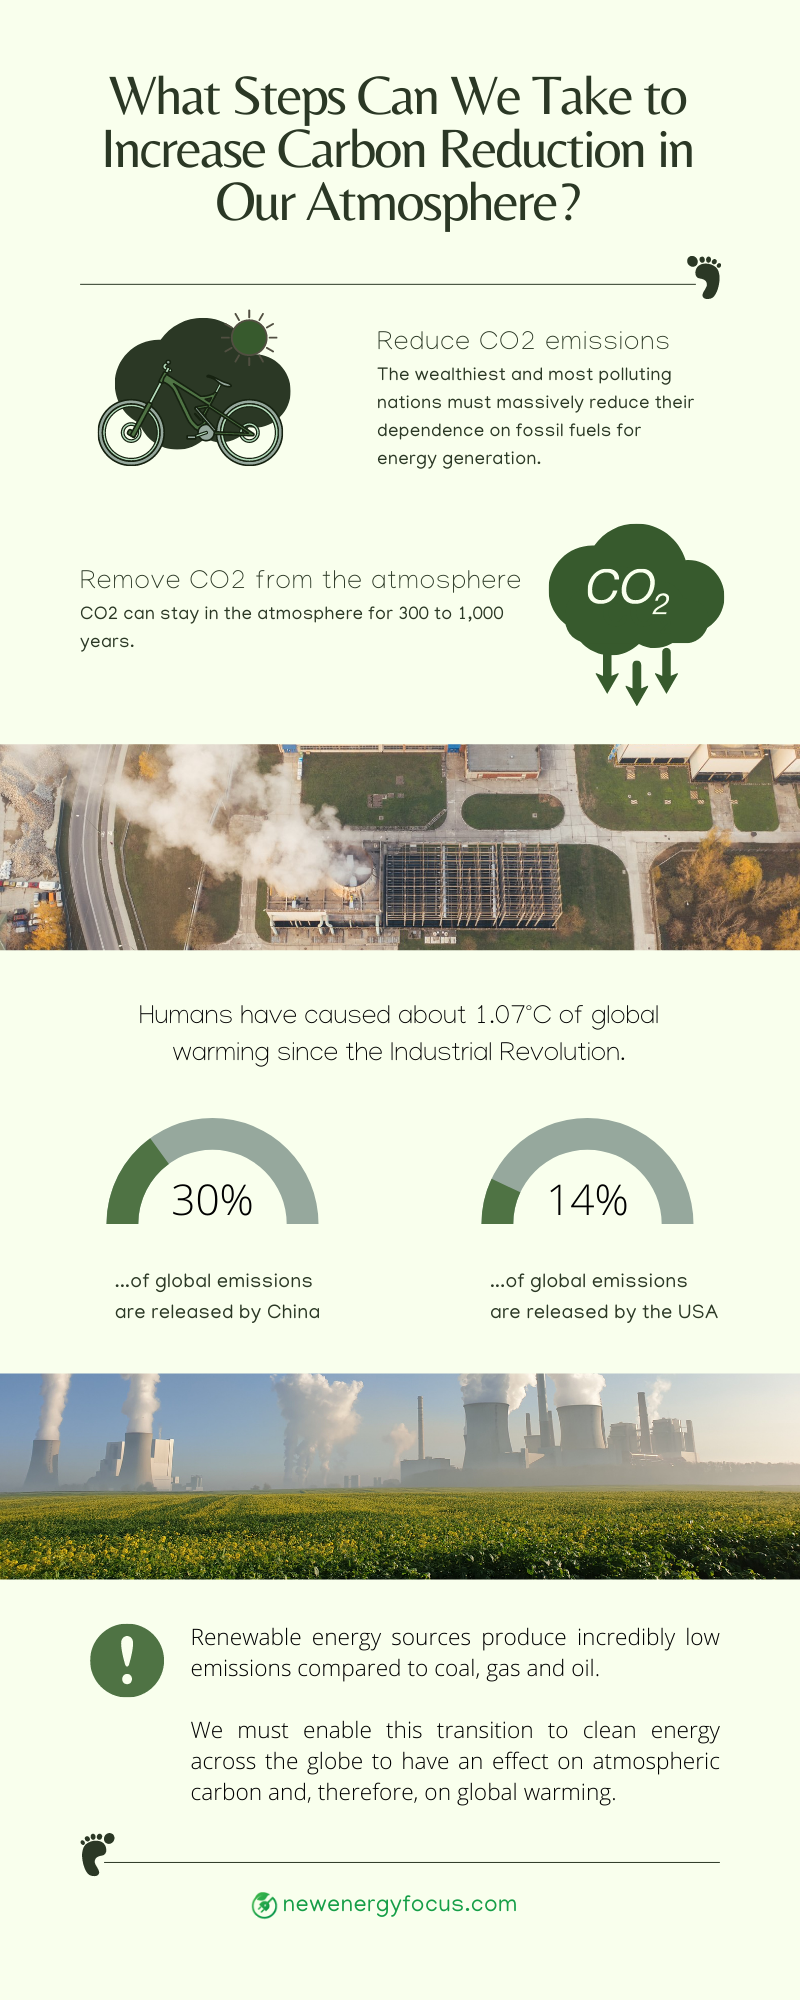 What Steps Can We Take to Increase Carbon Reduction in Our Atmosphere?